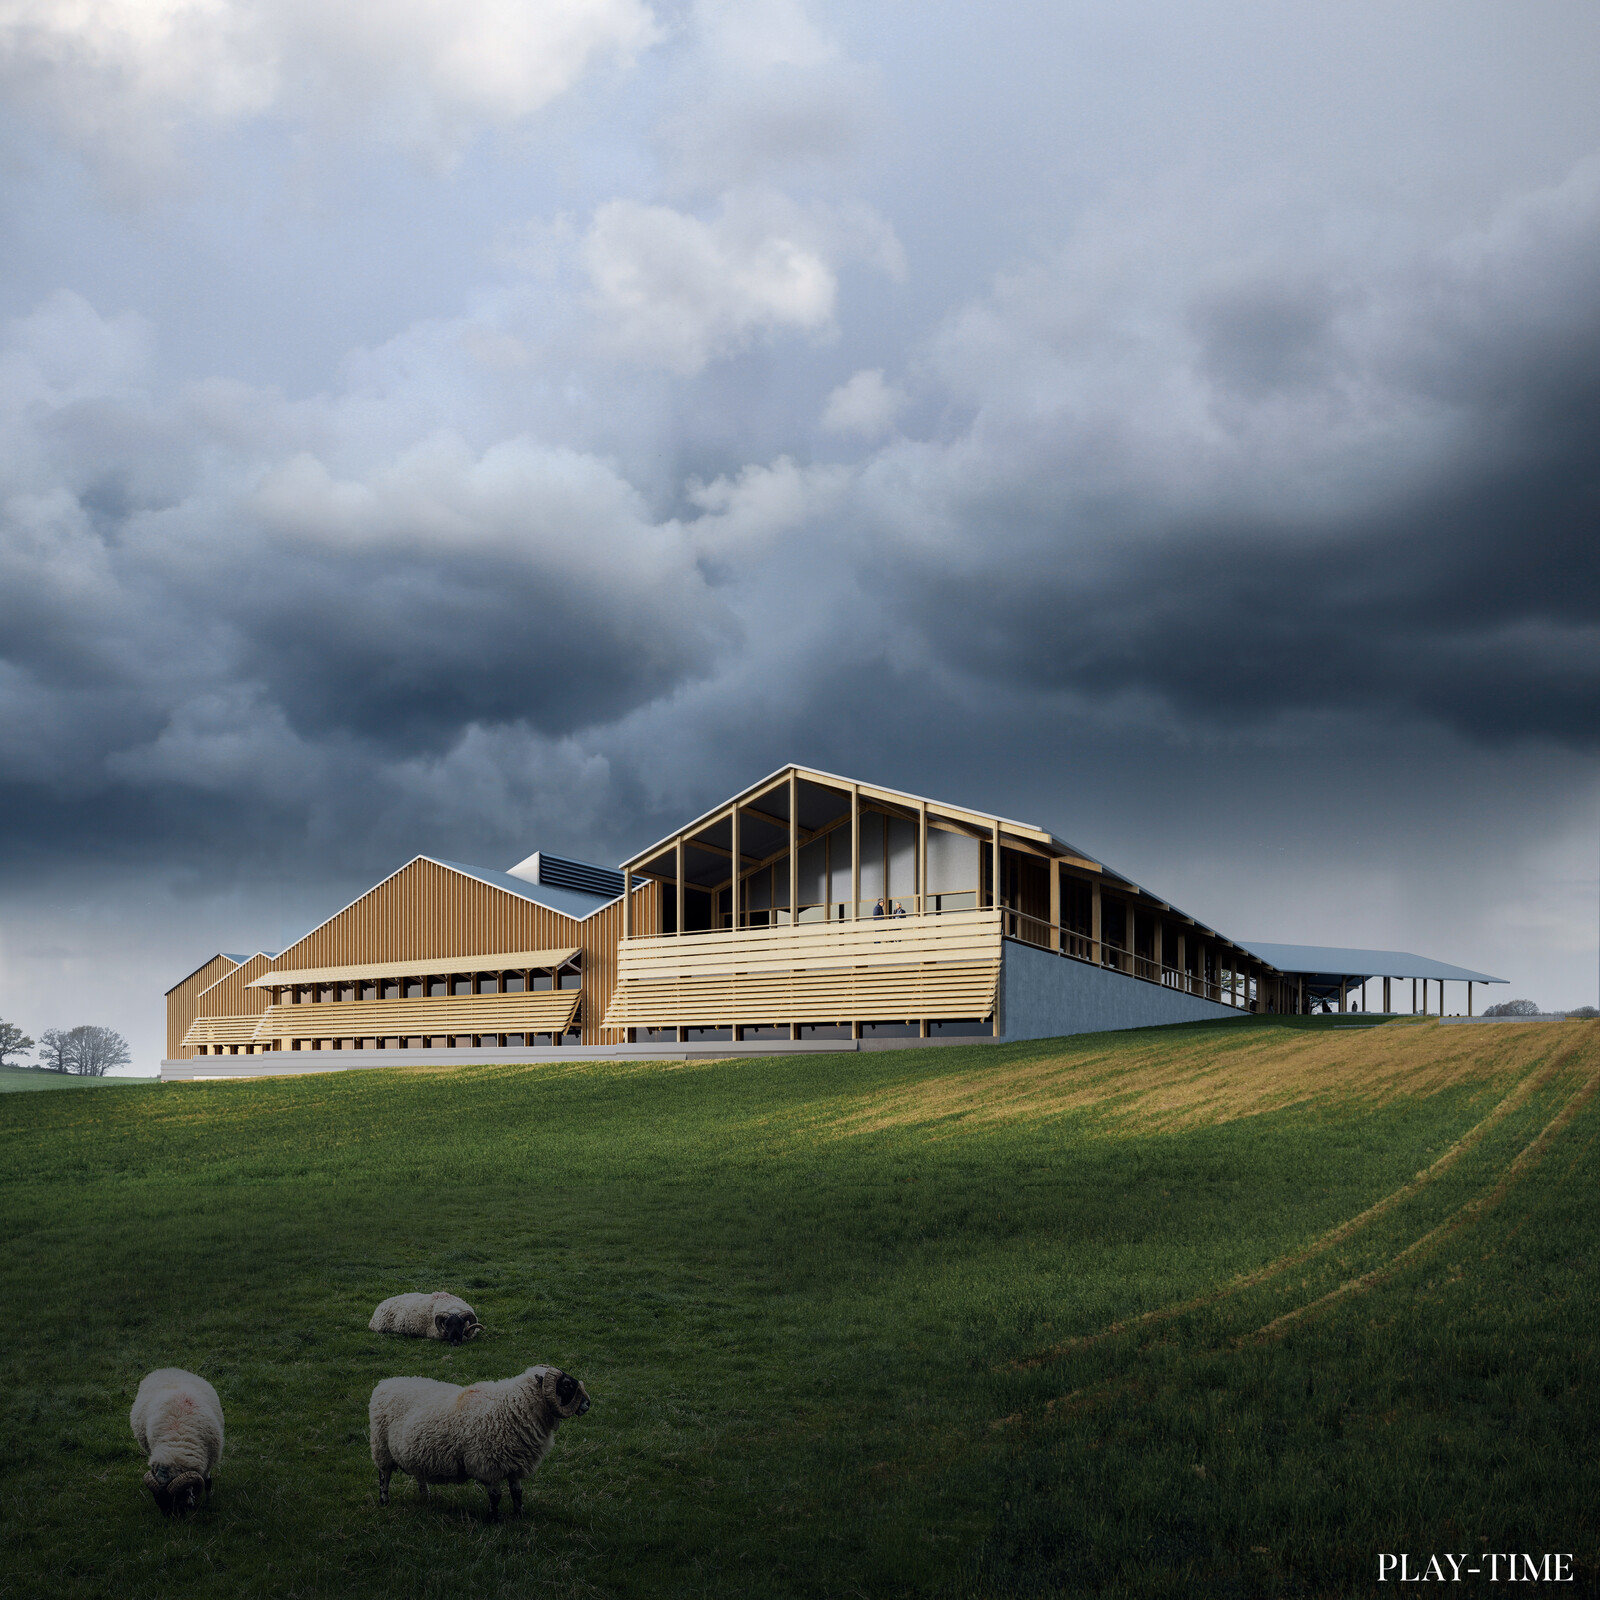 New Alki factory designed by vaumm arkitektura. Image by Play-time